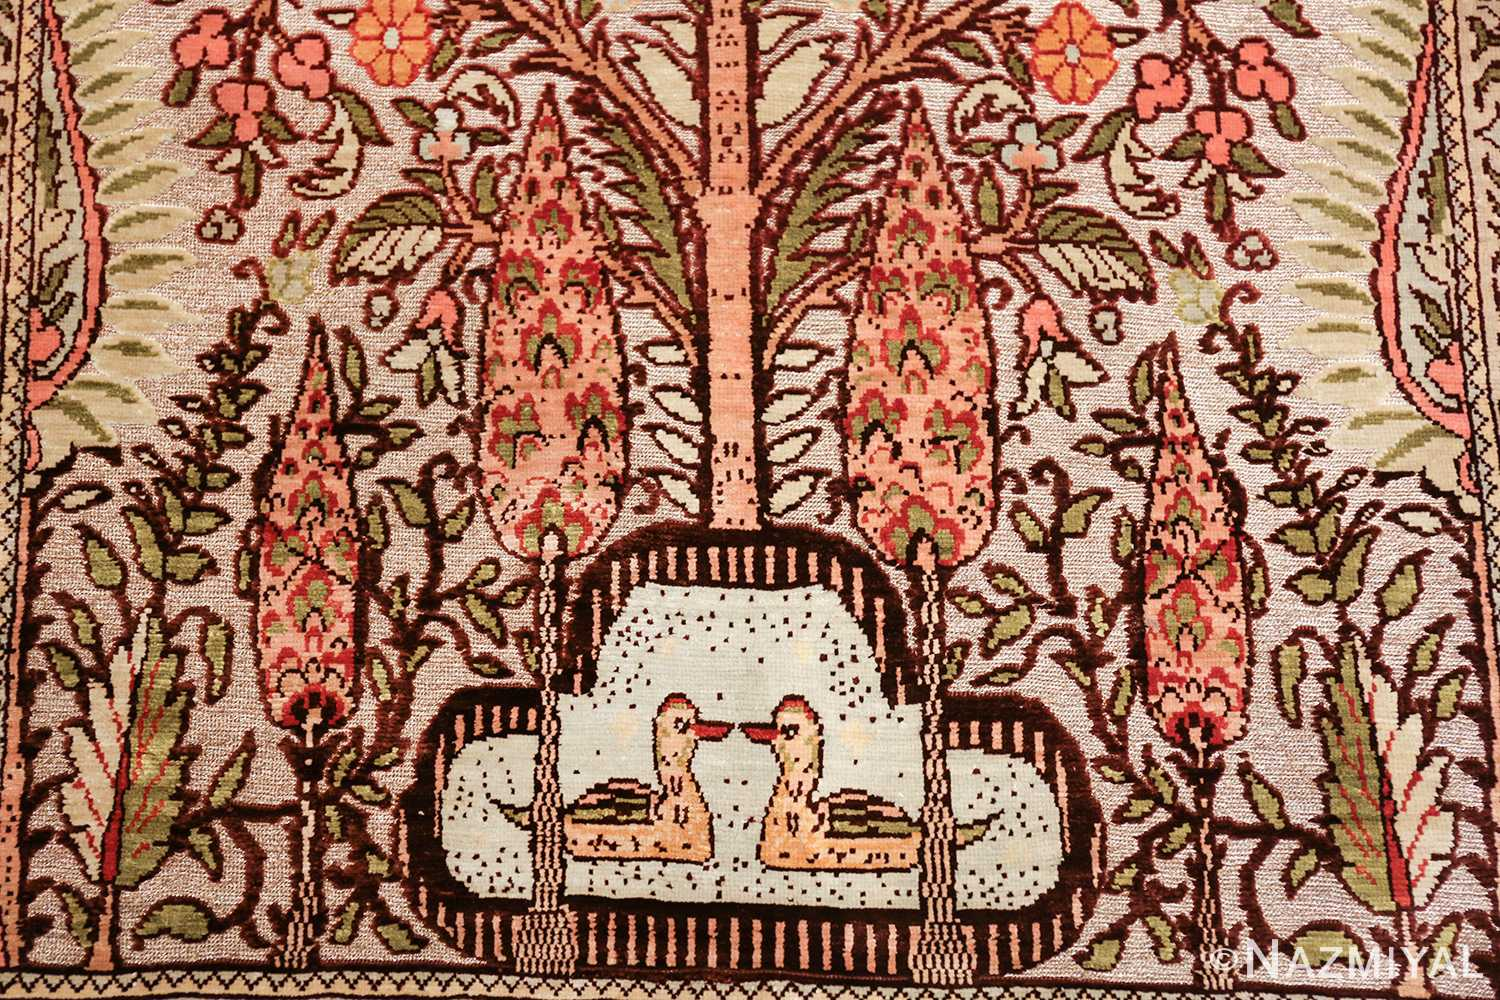 tree of life silk and metallic souf hereke turkish prayer rug 49612 ducks Nazmiyal